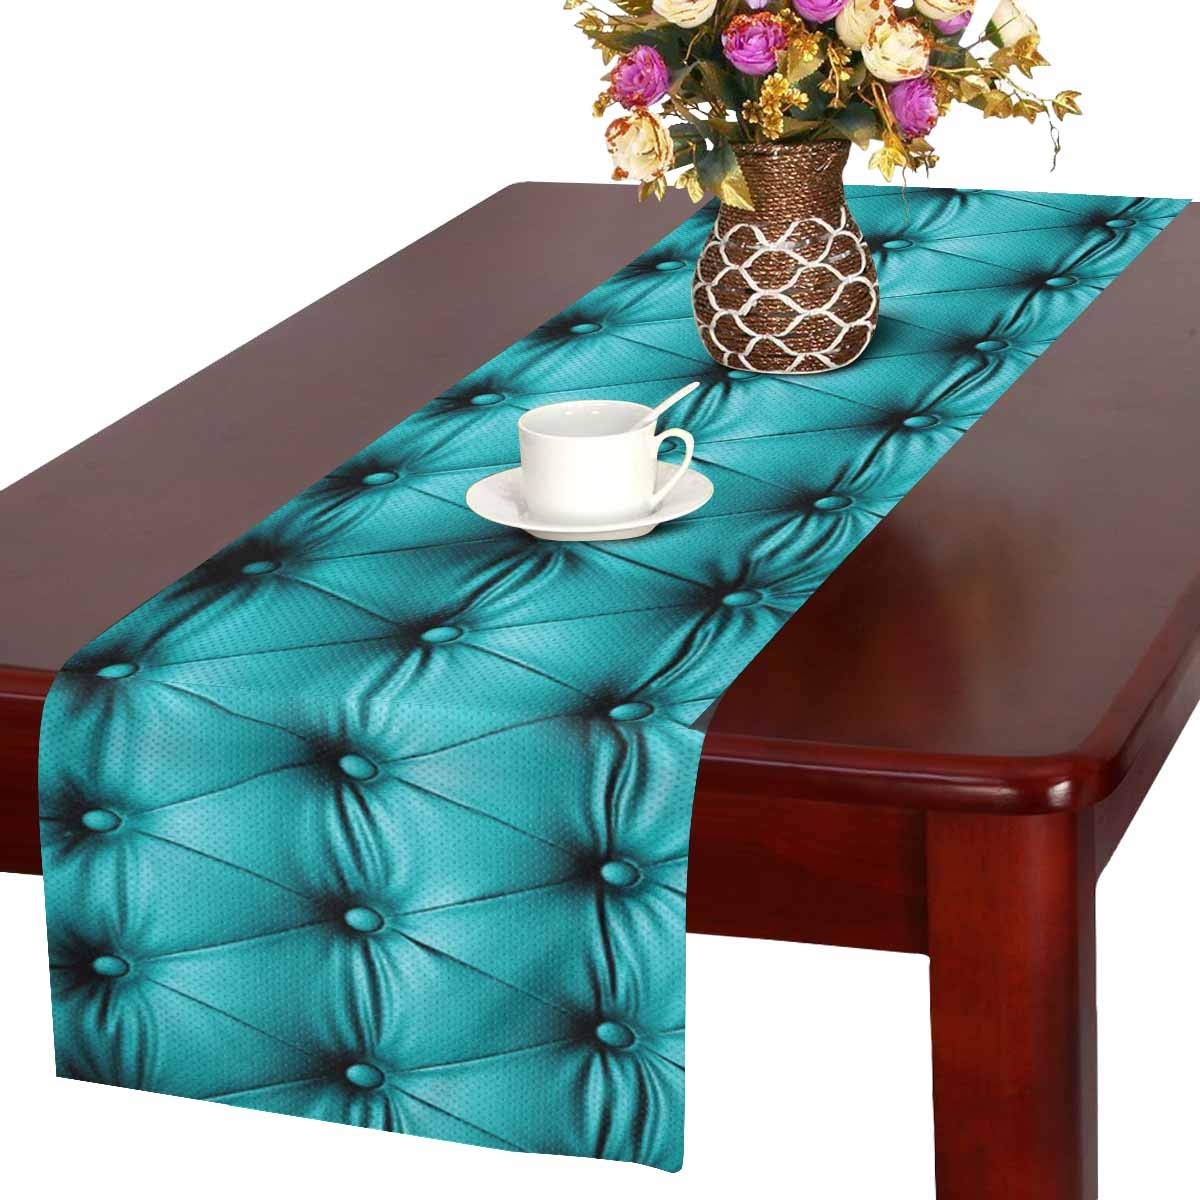 Mkhert Funny Blue Turquoise Buttoned Couch Sofa Bed Headboard Leather Table Runner For Office Kitchen Dining Wedding Party Banquet 16x72 Inch Walmart Com Walmart Com